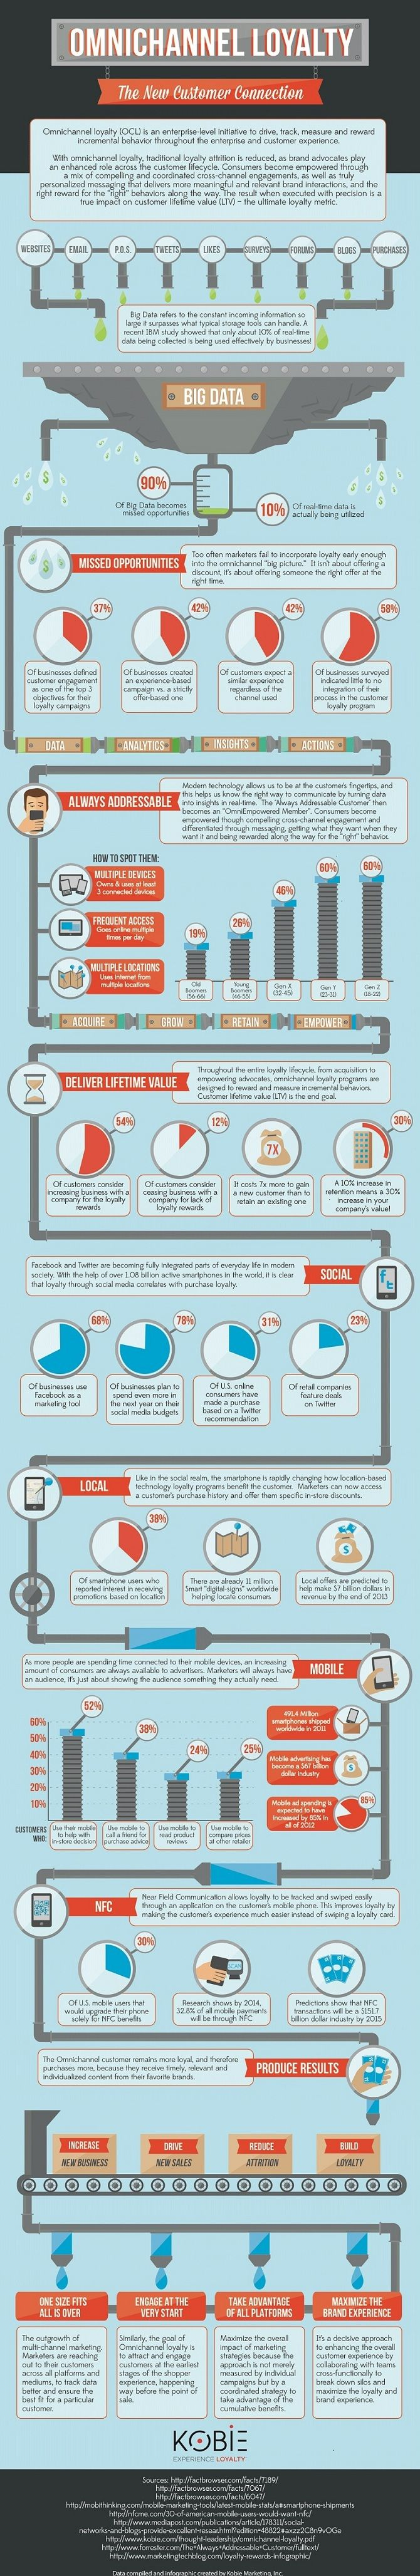 """The following infographic covers missed opportunities, the """"always addressable consumer,"""" the importance of delivering lifetime value, the role of social media in OCL, and more.    Read more: http://www.marketingprofs.com/chirp/2013/10476/omnichannel-loyalty-the-new-customer-connection-infographic#ixzz2PkG253Ac"""